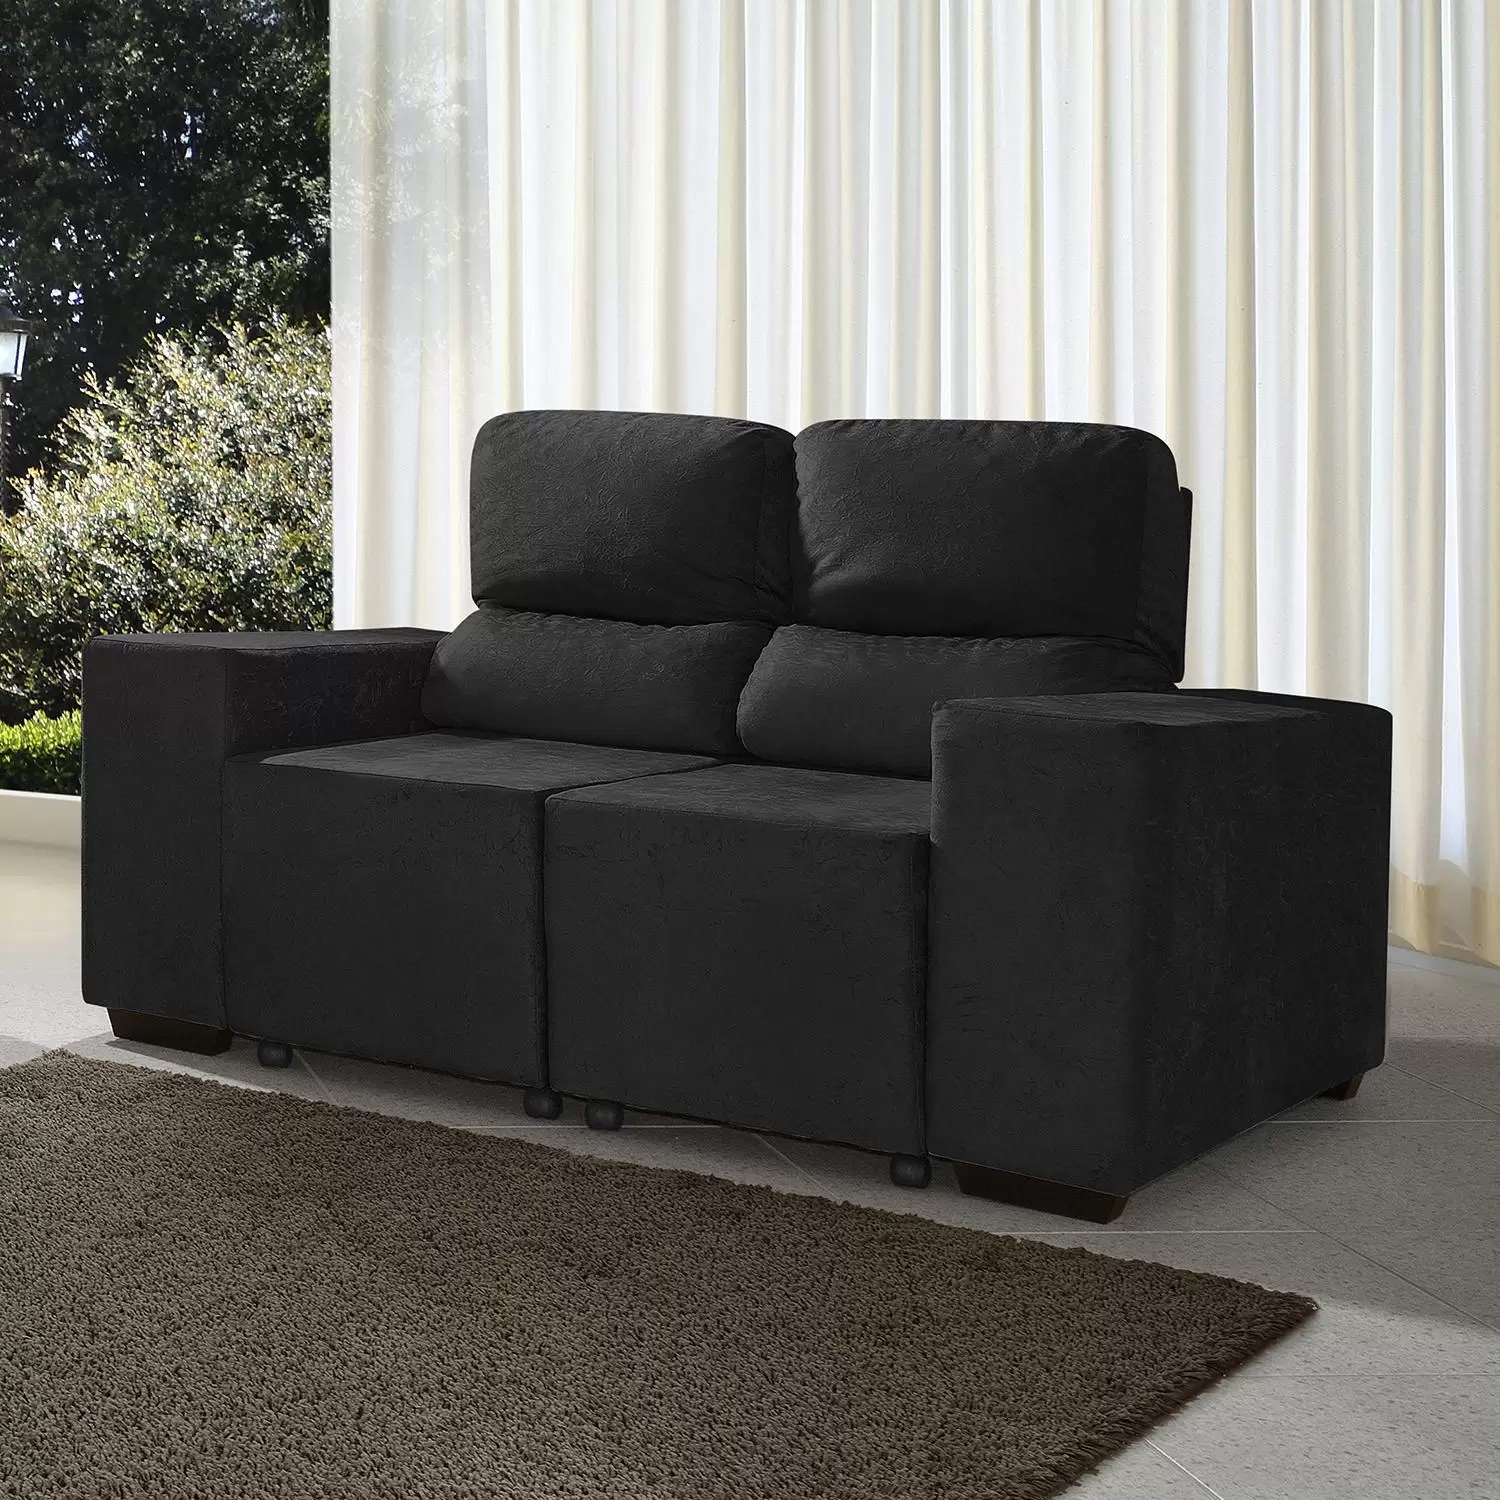 Sofa Retratil E Reclinavel Submarino Sofa Retratil Reclinavel 2 Lugares Preço Sofa Ideas